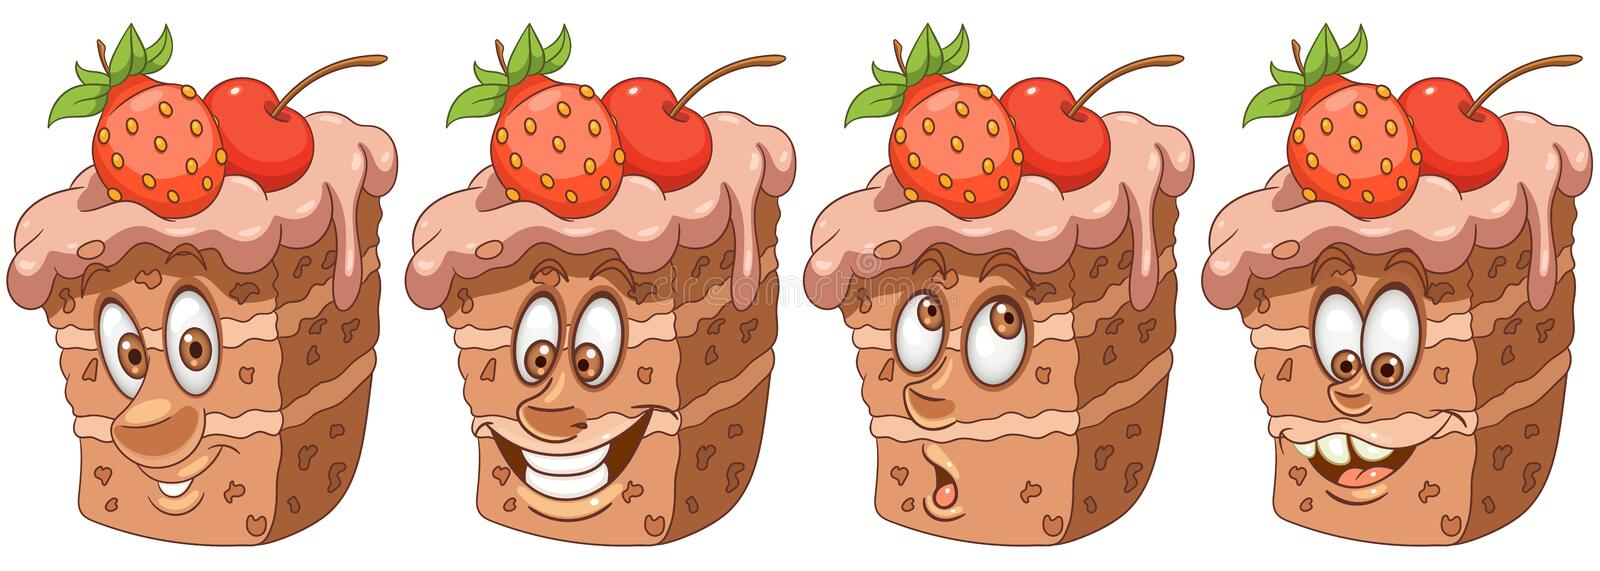 Cake. Pie. Bakery and Pastry concept stock illustration